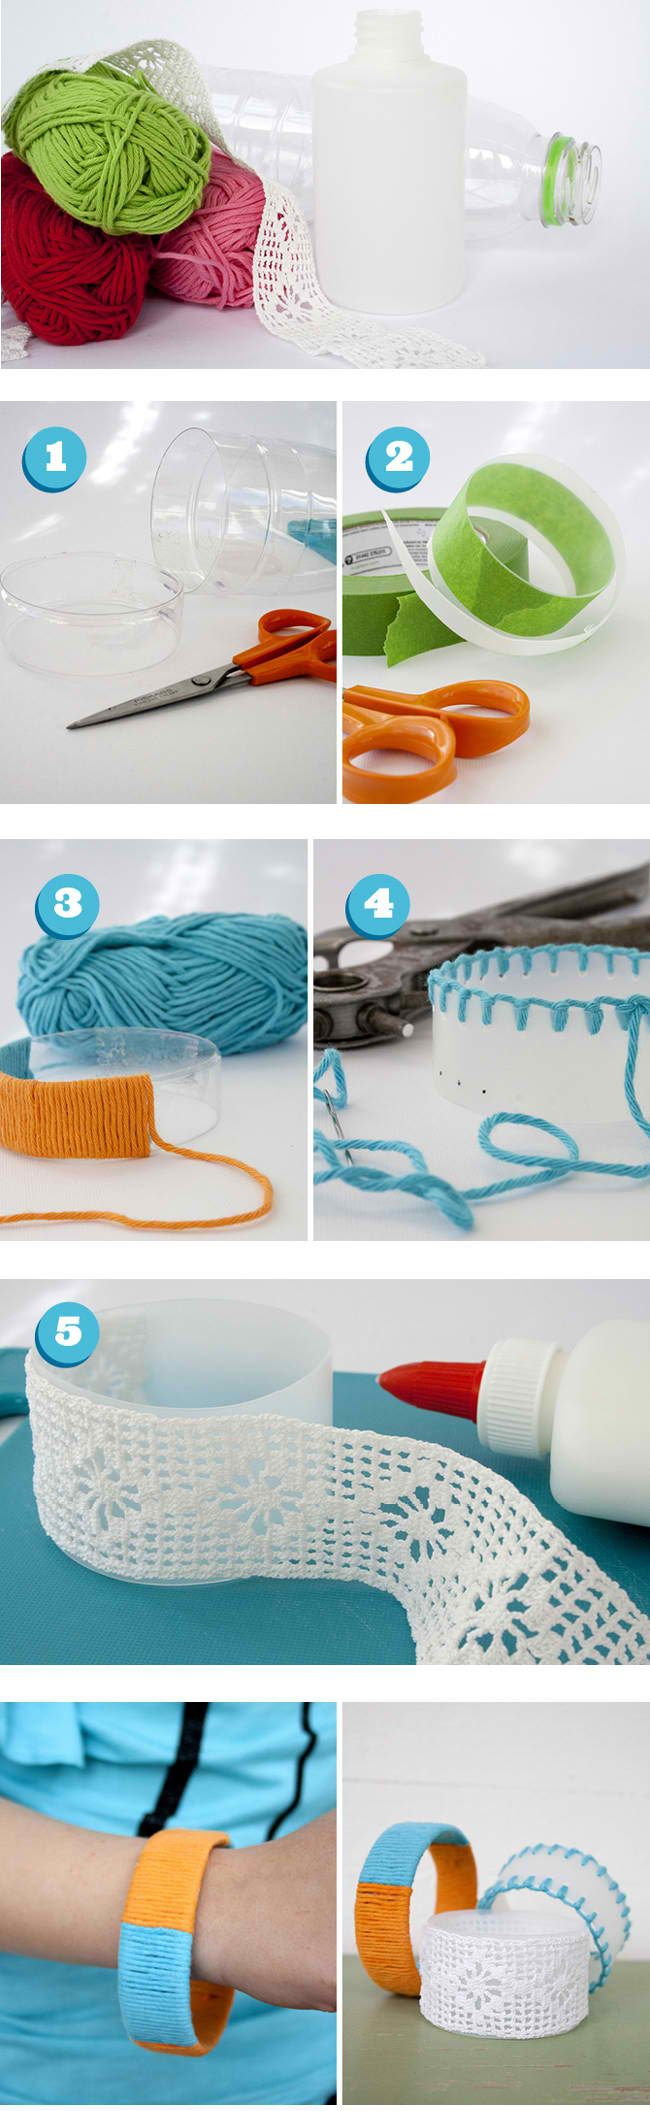 Pinterest for Best out of waste easy to make